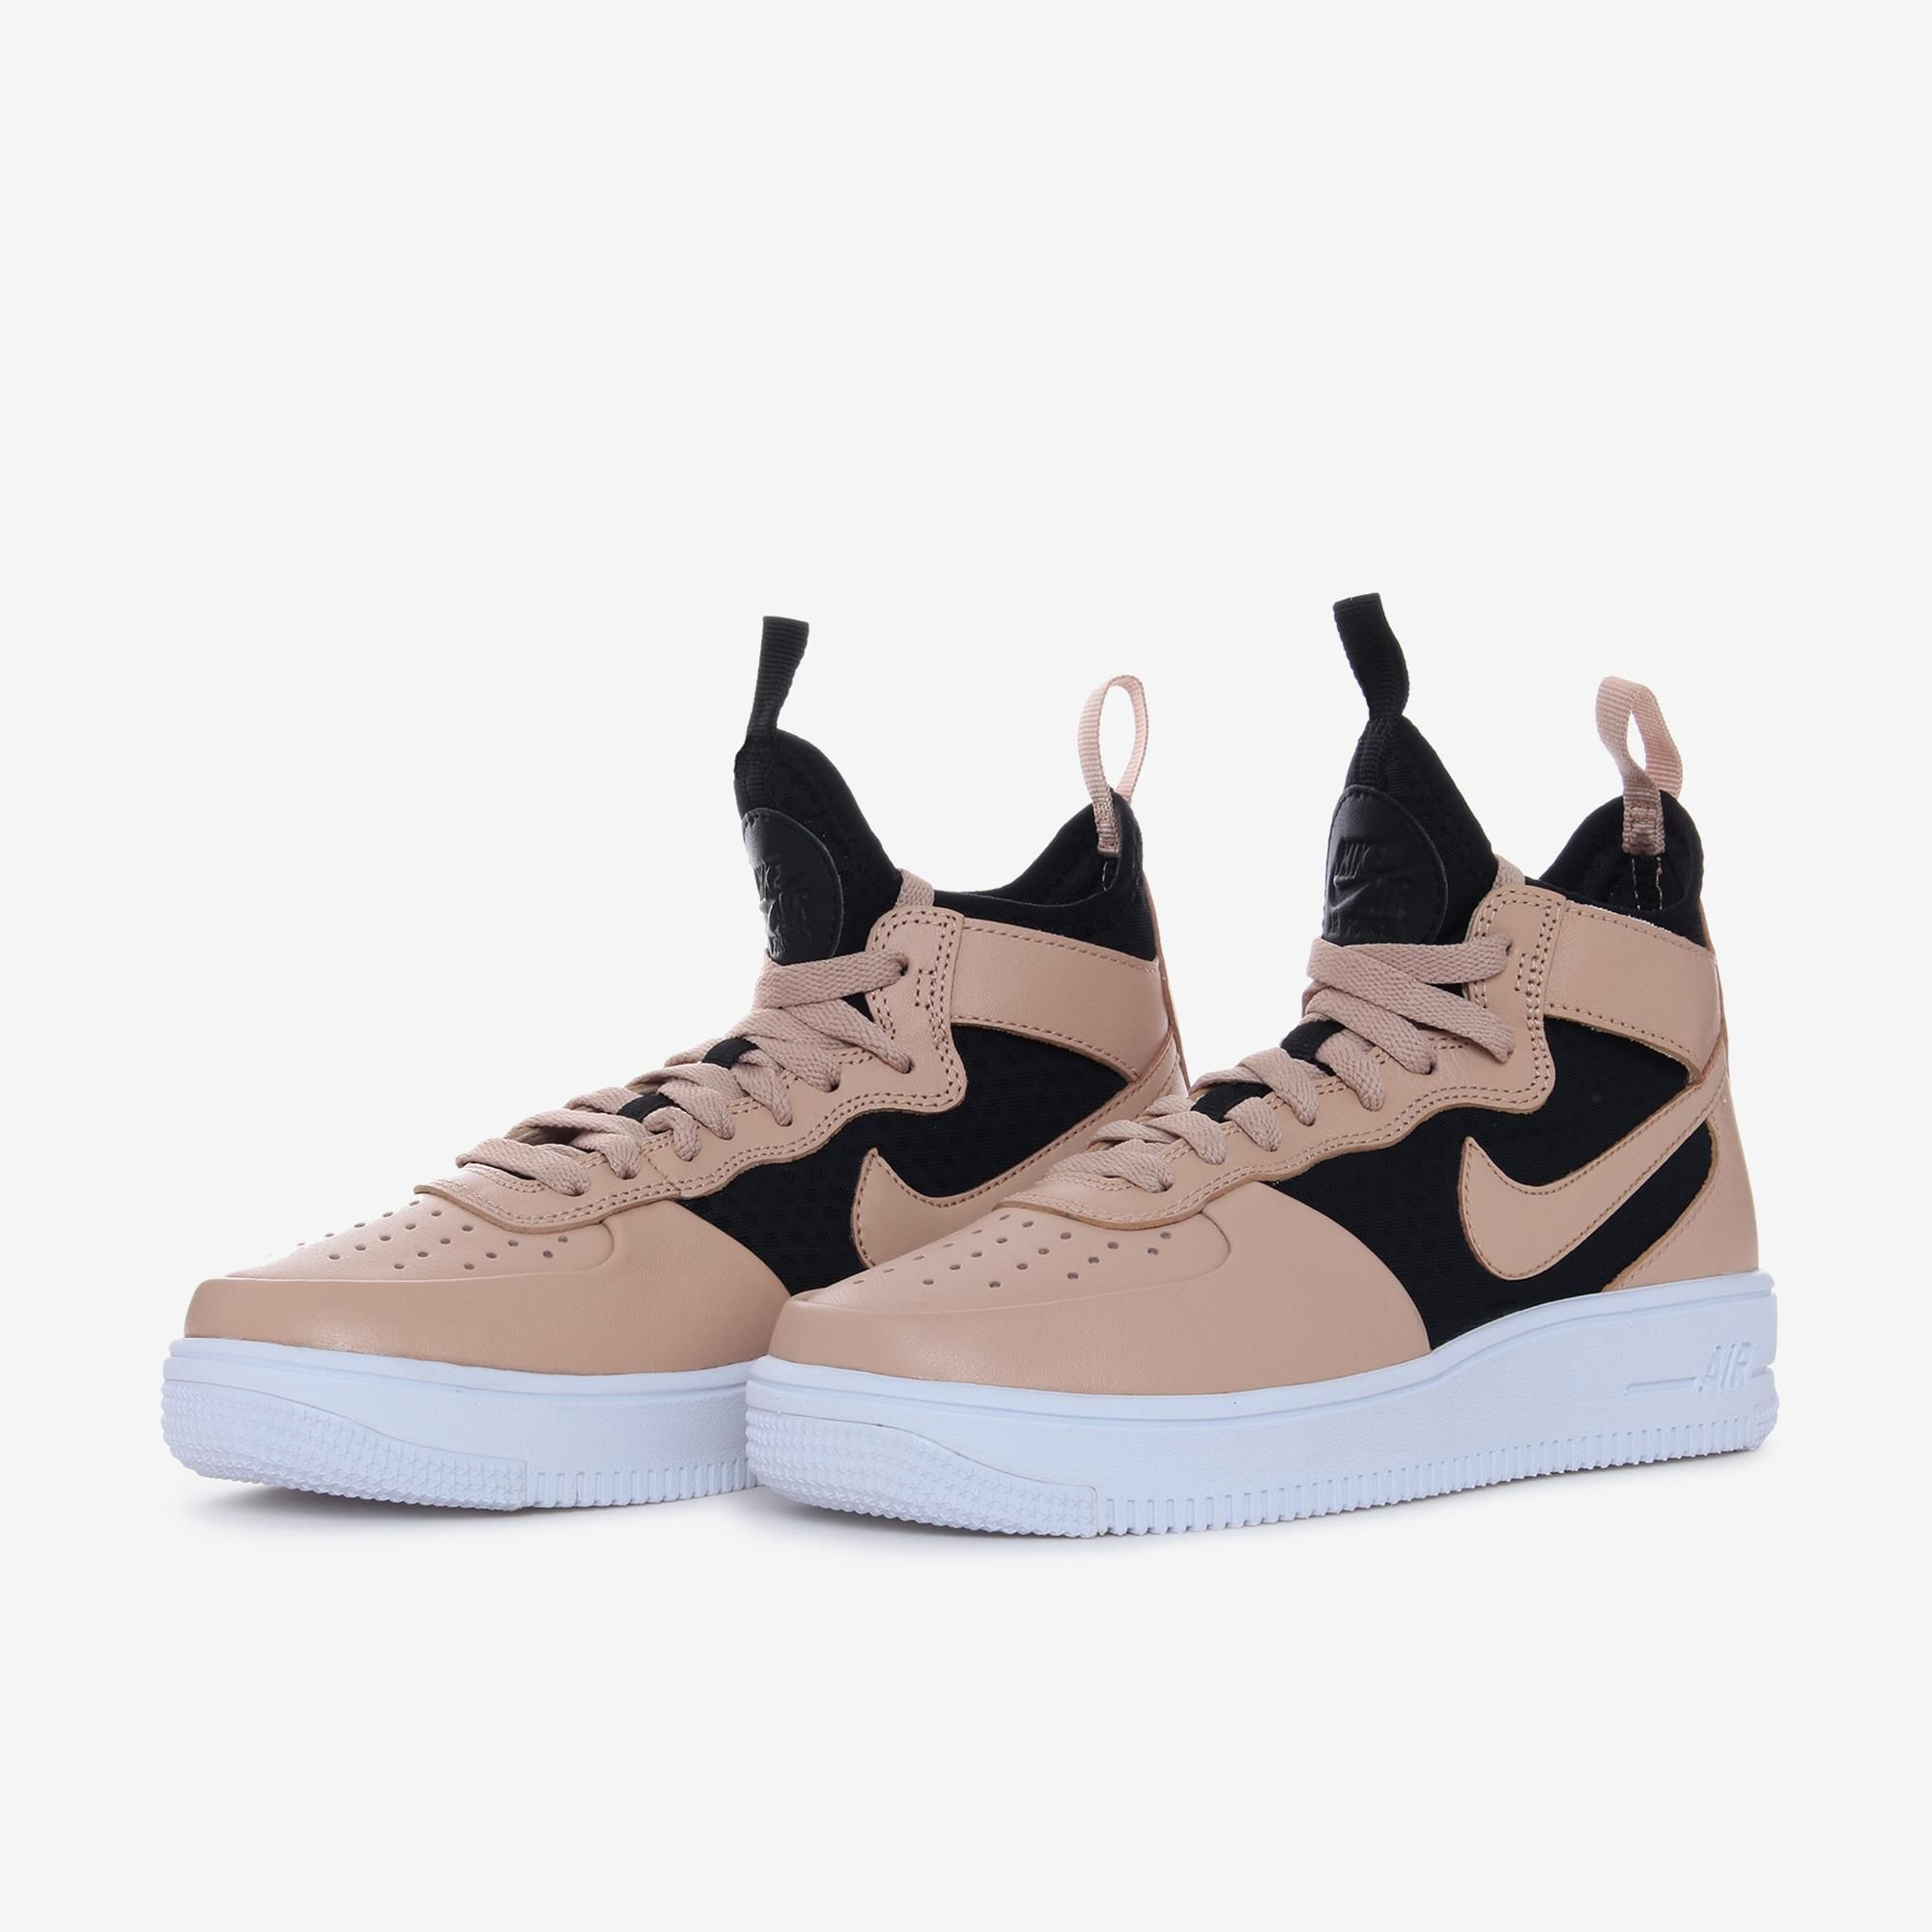 Tênis Nike Air Force 1 Mid UltraForce Mid 1 Feminino Tênis 9c8d95